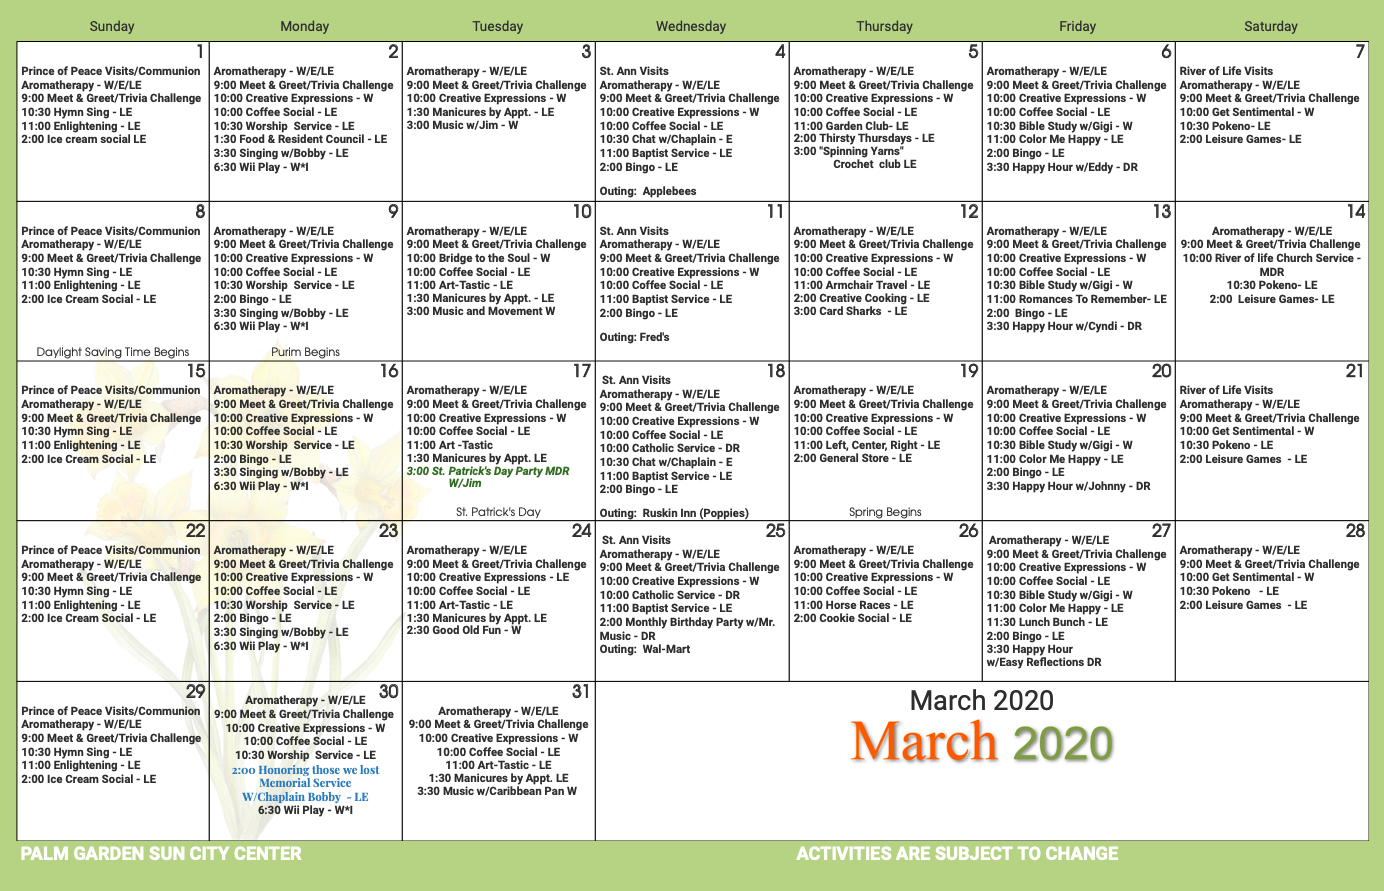 Palm Garden of Sun City March 2020 activity calendar